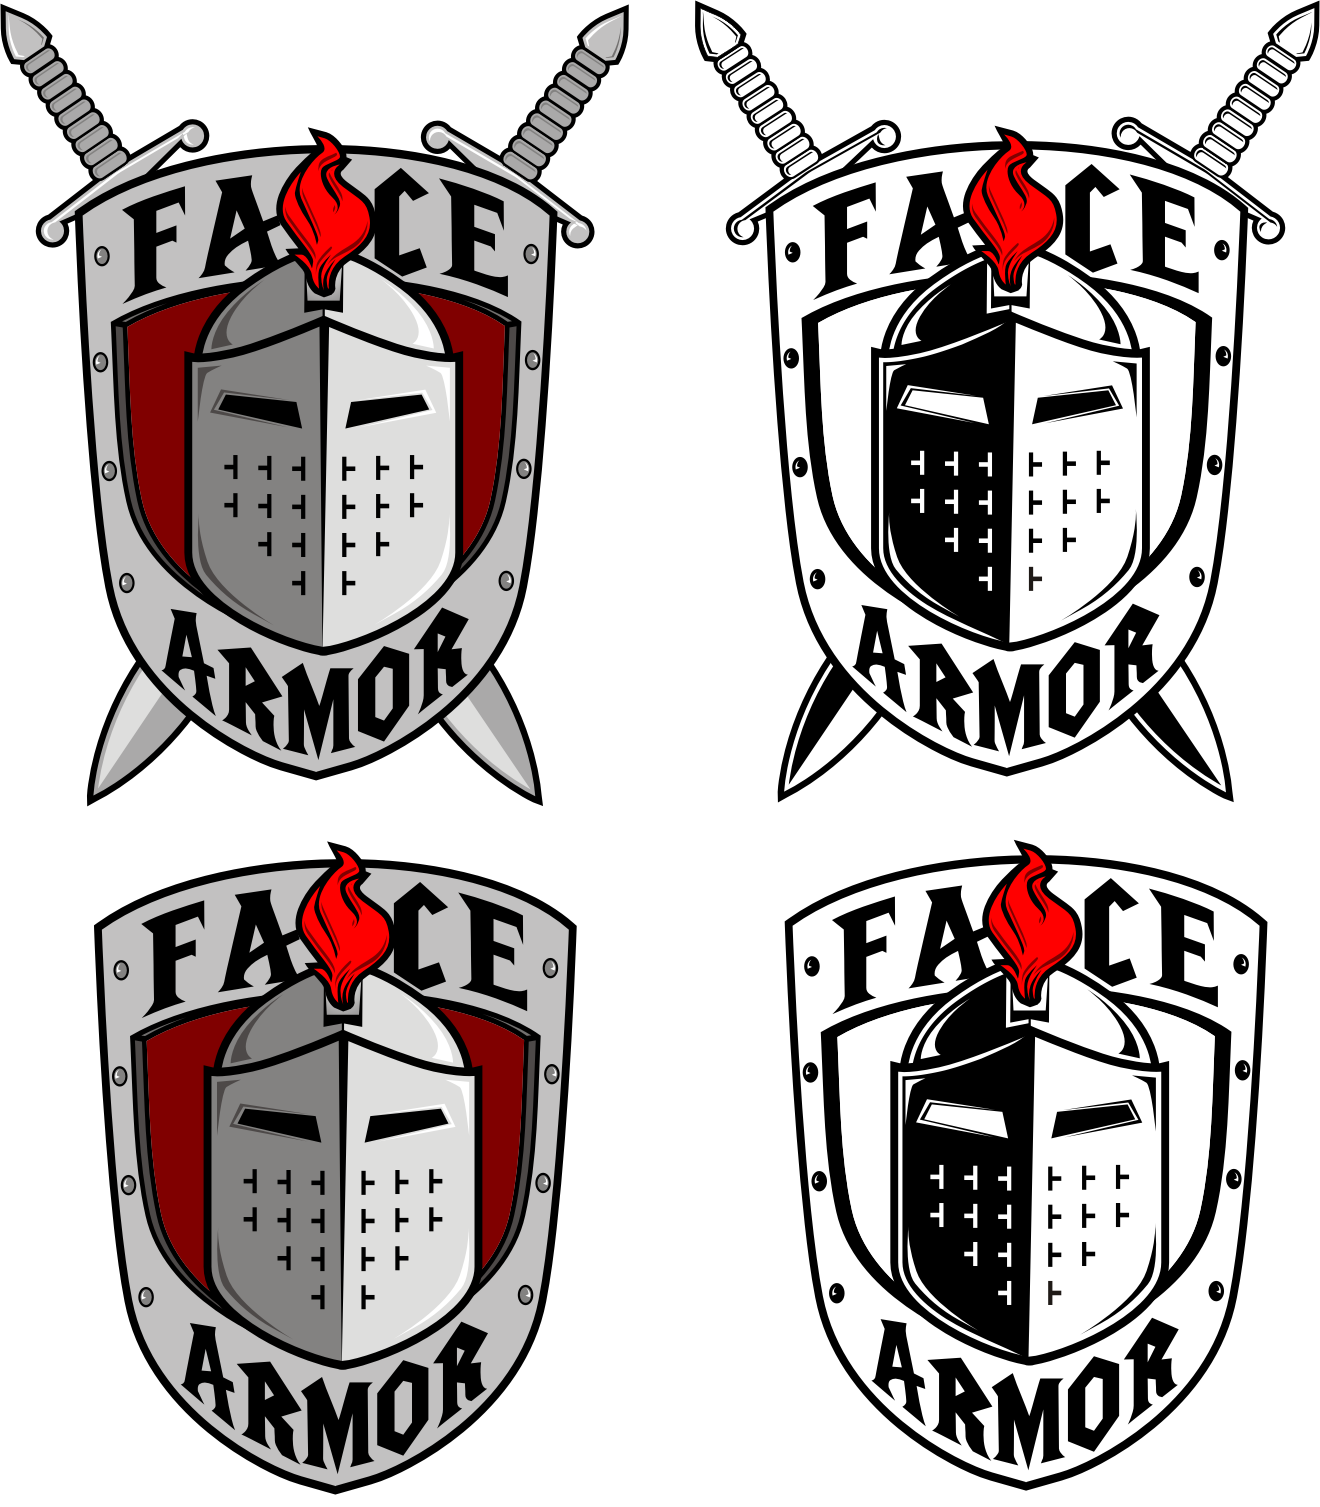 Help Face Armor with a new logo